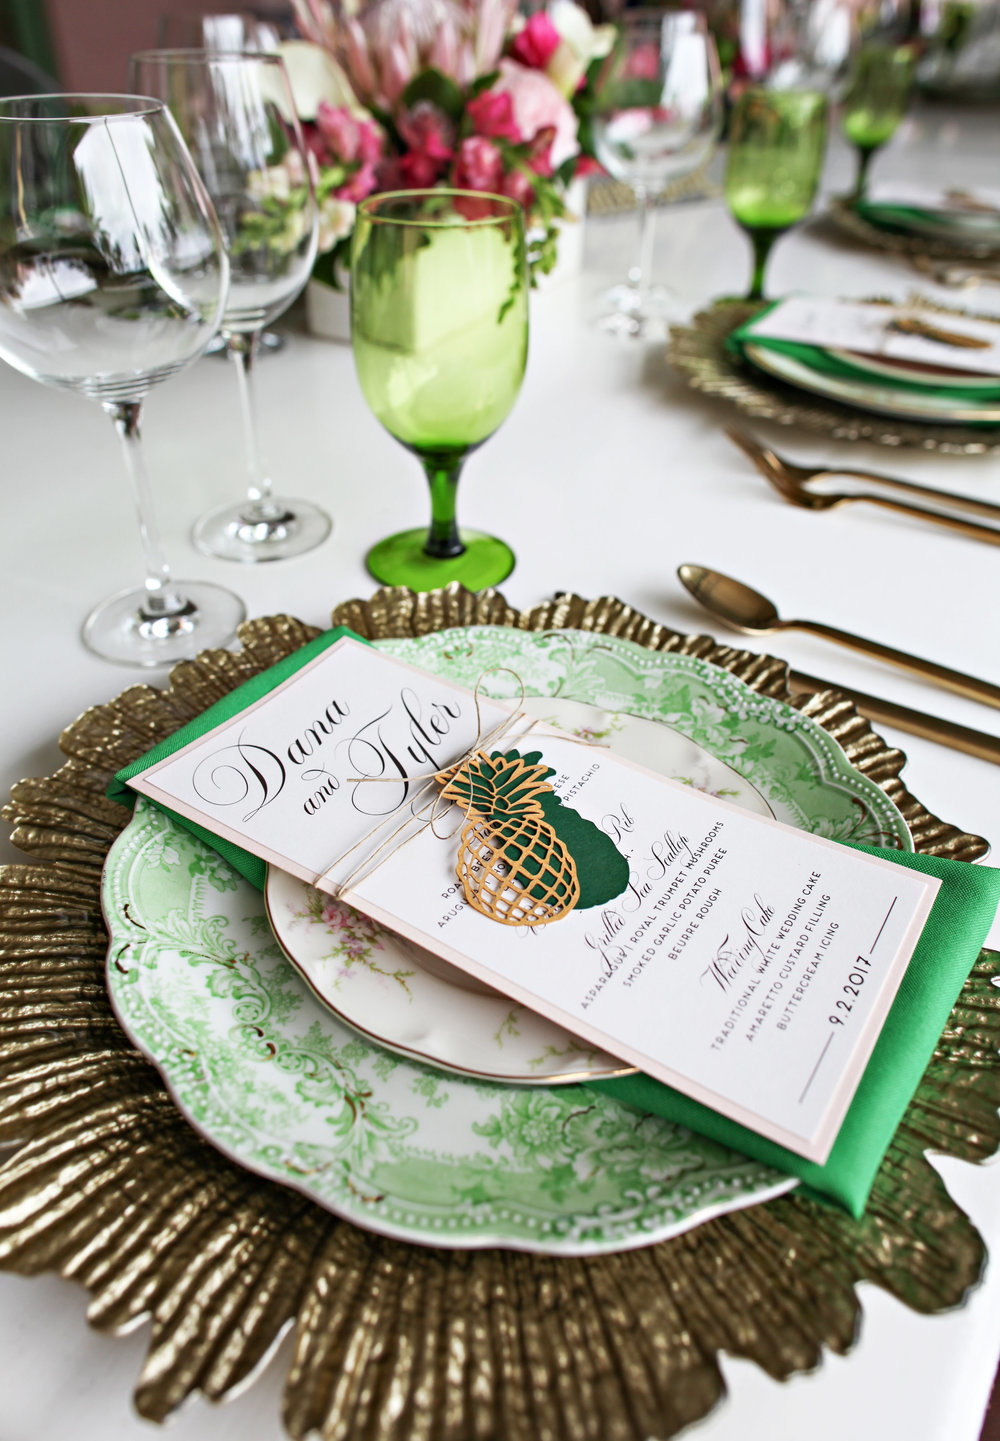 Pineapple Wedding Reception Place Setting.jpg